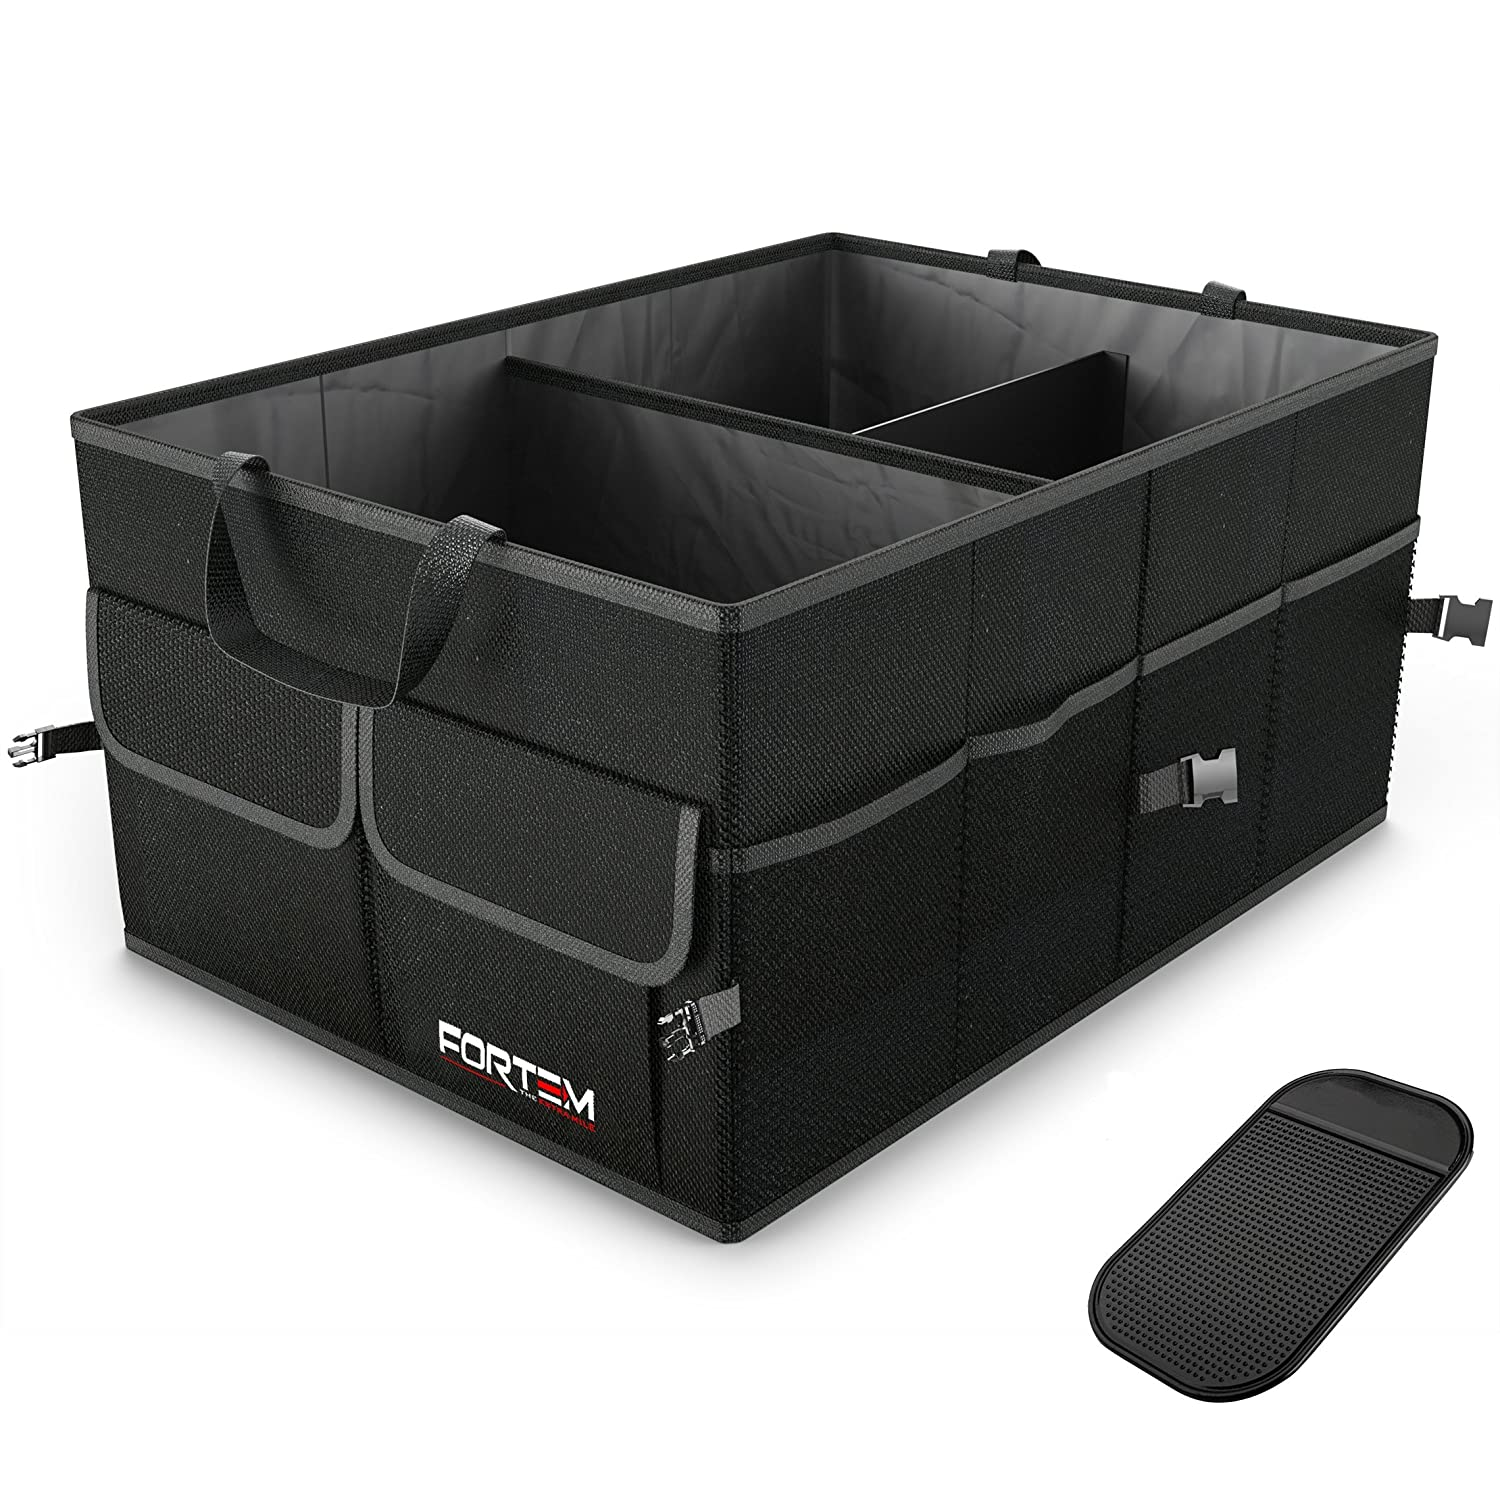 The Best Trunk Organizers For Your Vehicle: Reviews & Buying Guide 10